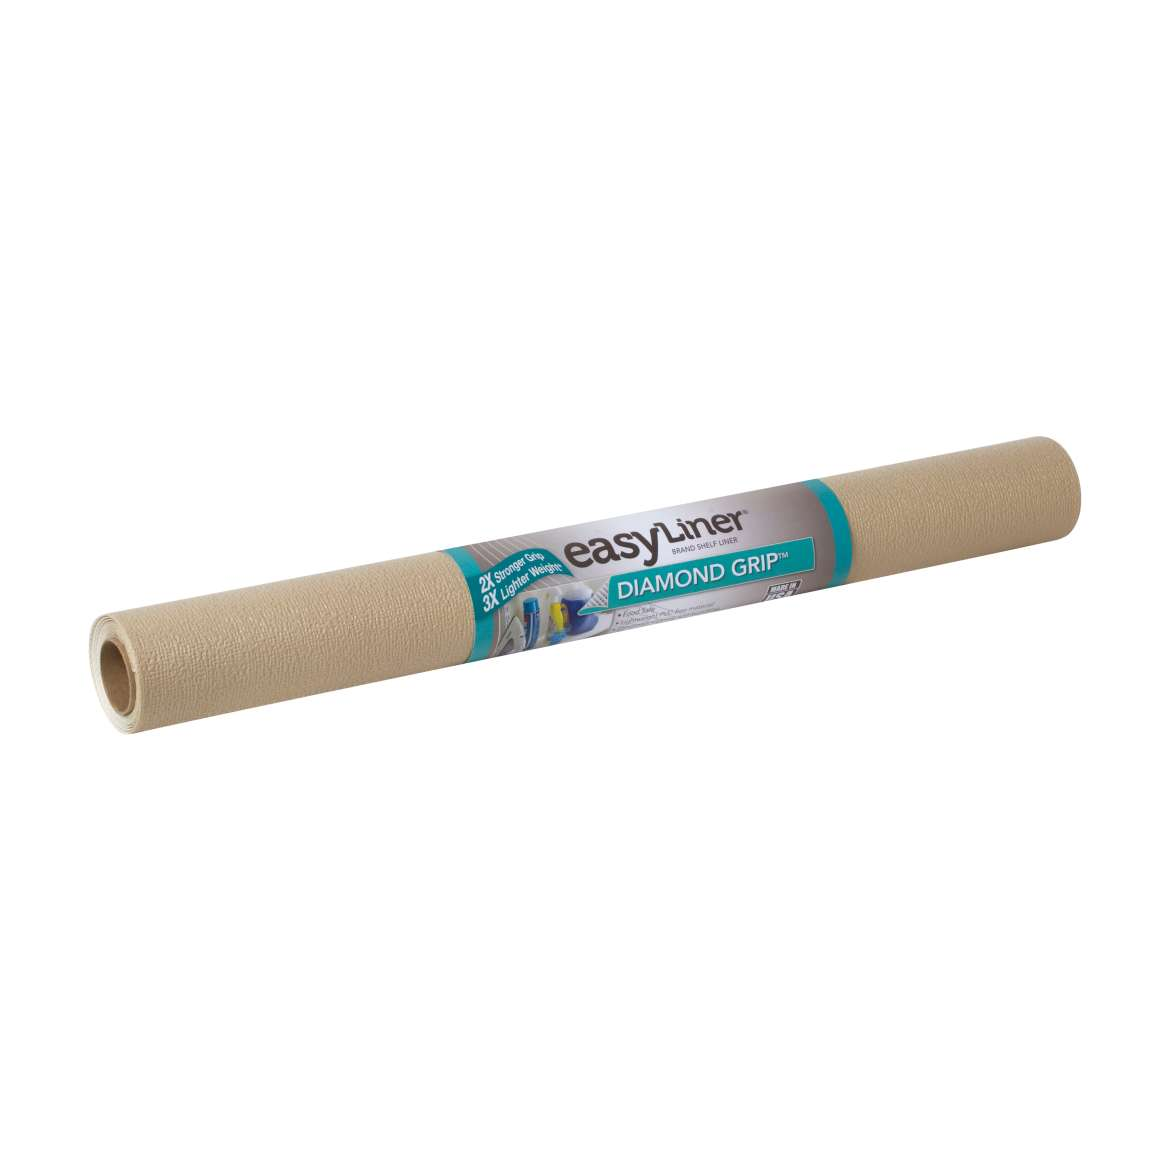 Diamond Grip™ Easy Liner® Brand Shelf Liner - Taupe, 20 in. x 5 ft. Image